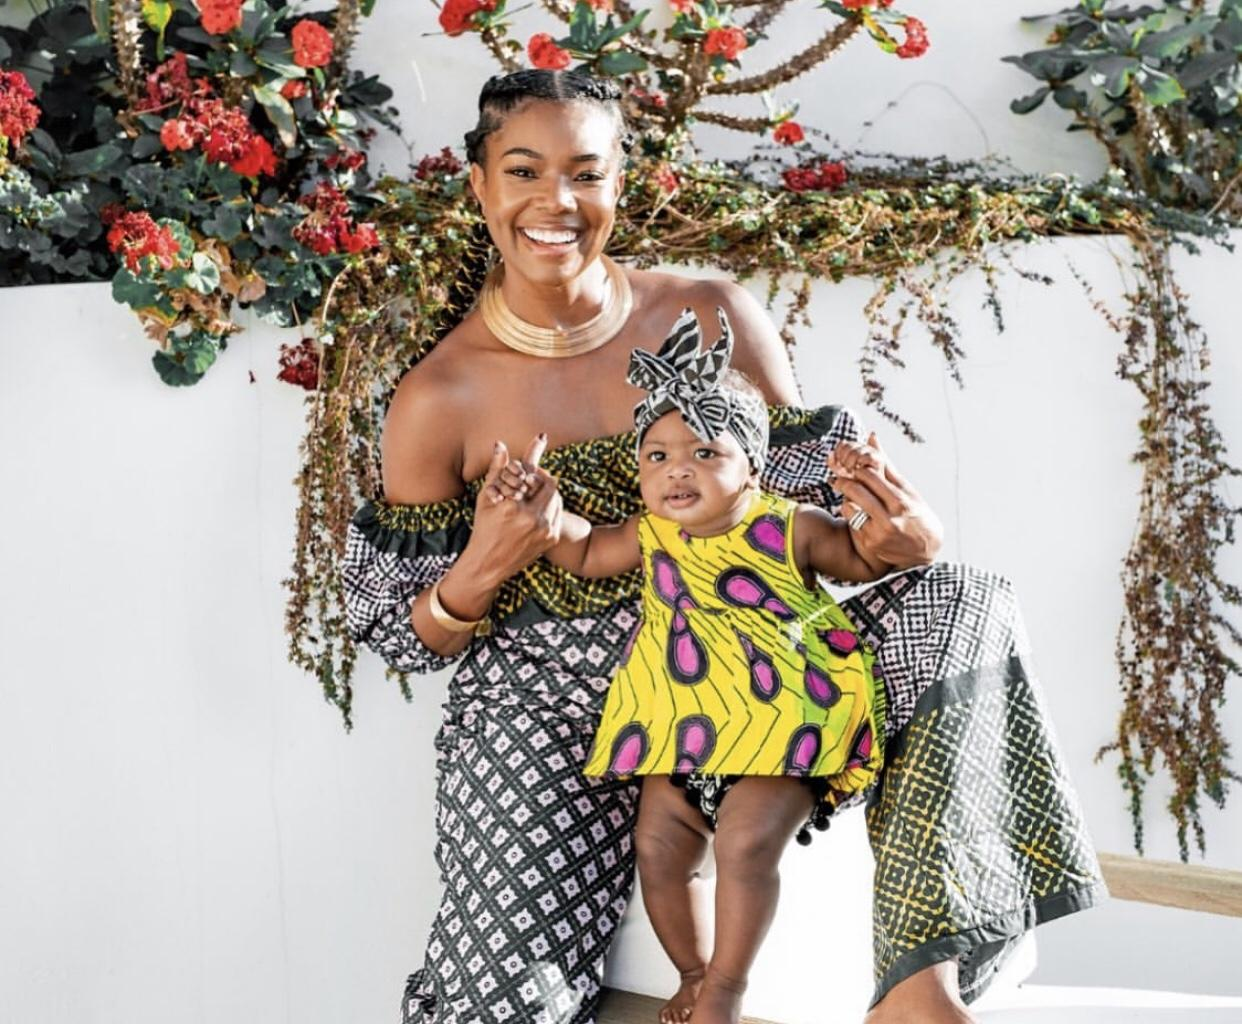 Dwyane Wade Has The Best Time With His And Gabrielle Union's Baby Girl, Kaavia - See The Gorgeous Photo